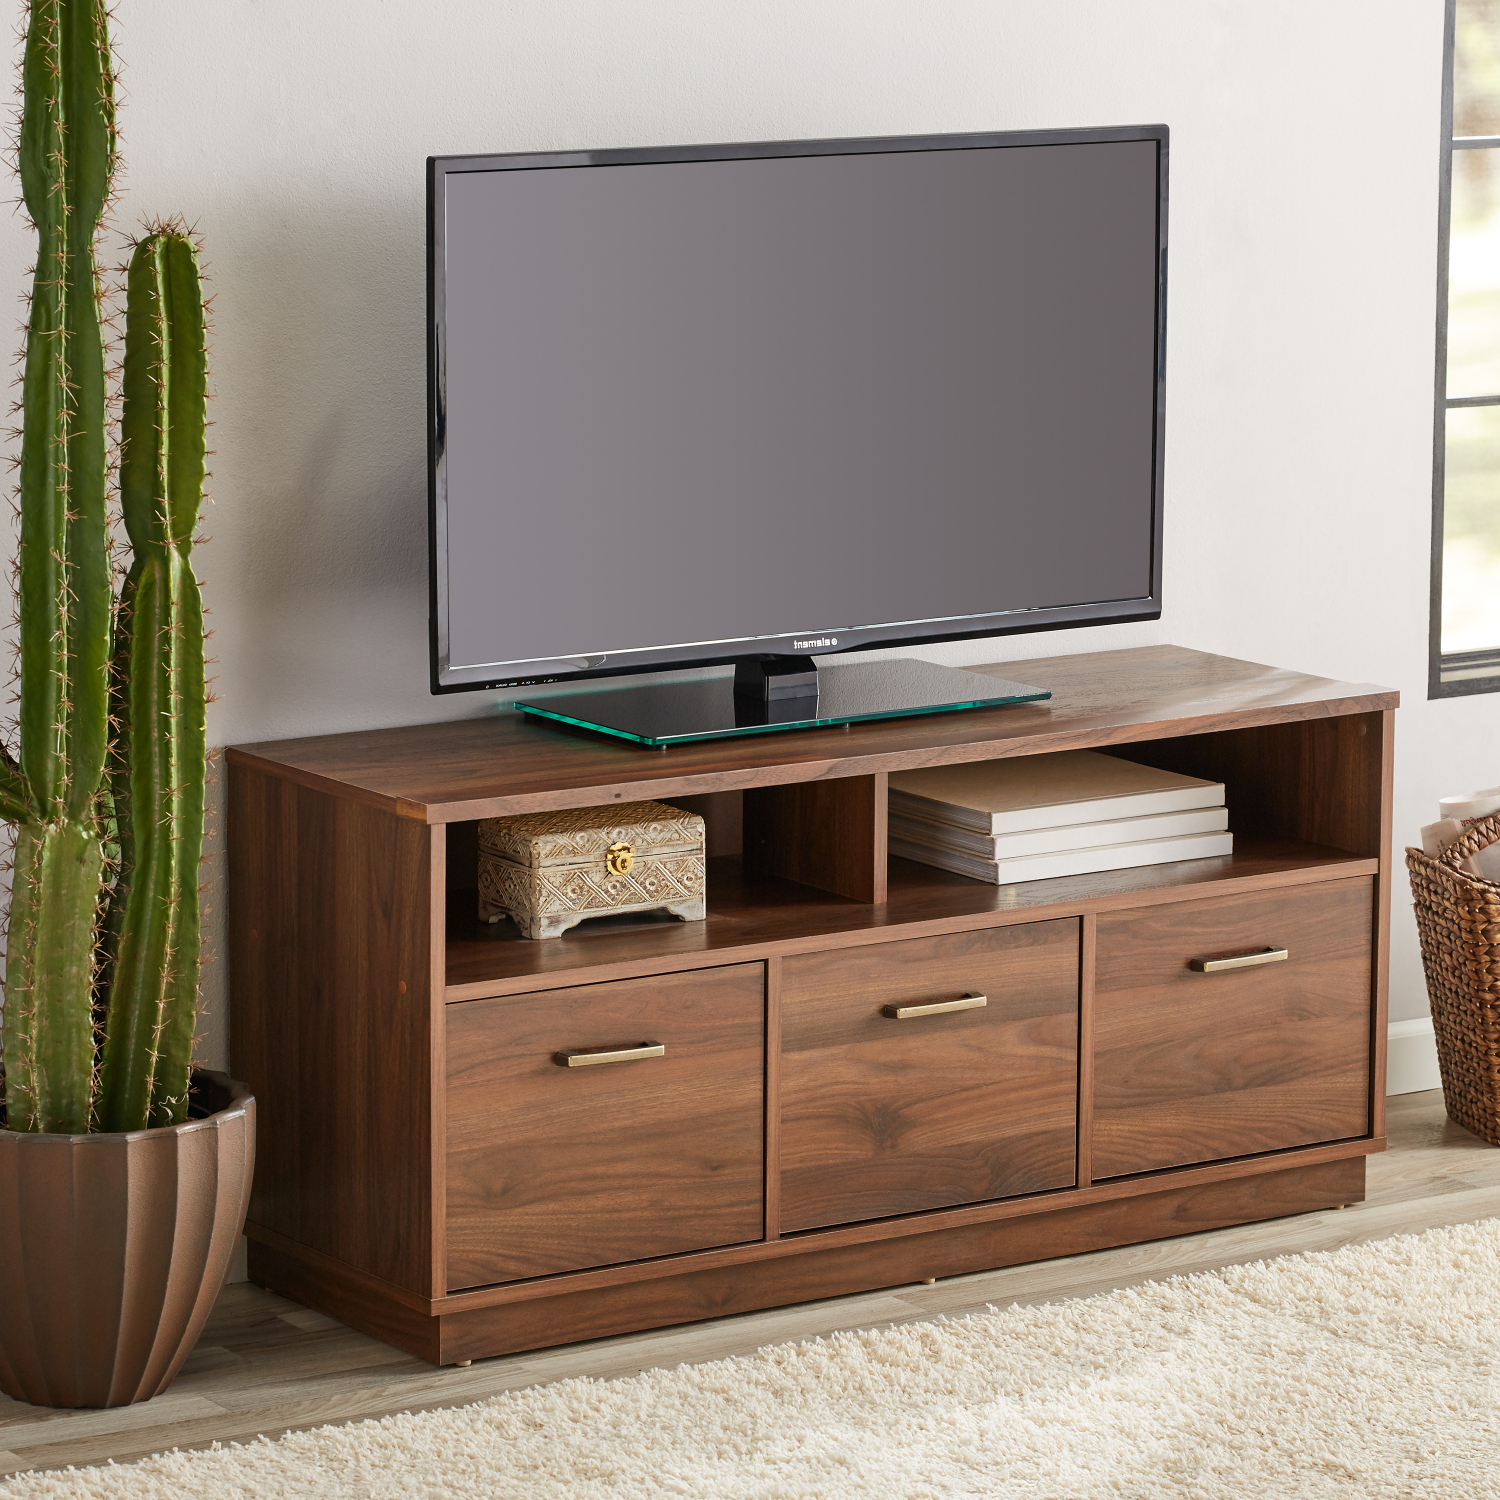 """Canyon Walnut 3 Door Tv Stand Console For Tvs Up To 50 Throughout Virginia Tv Stands For Tvs Up To 50"""" (View 13 of 20)"""